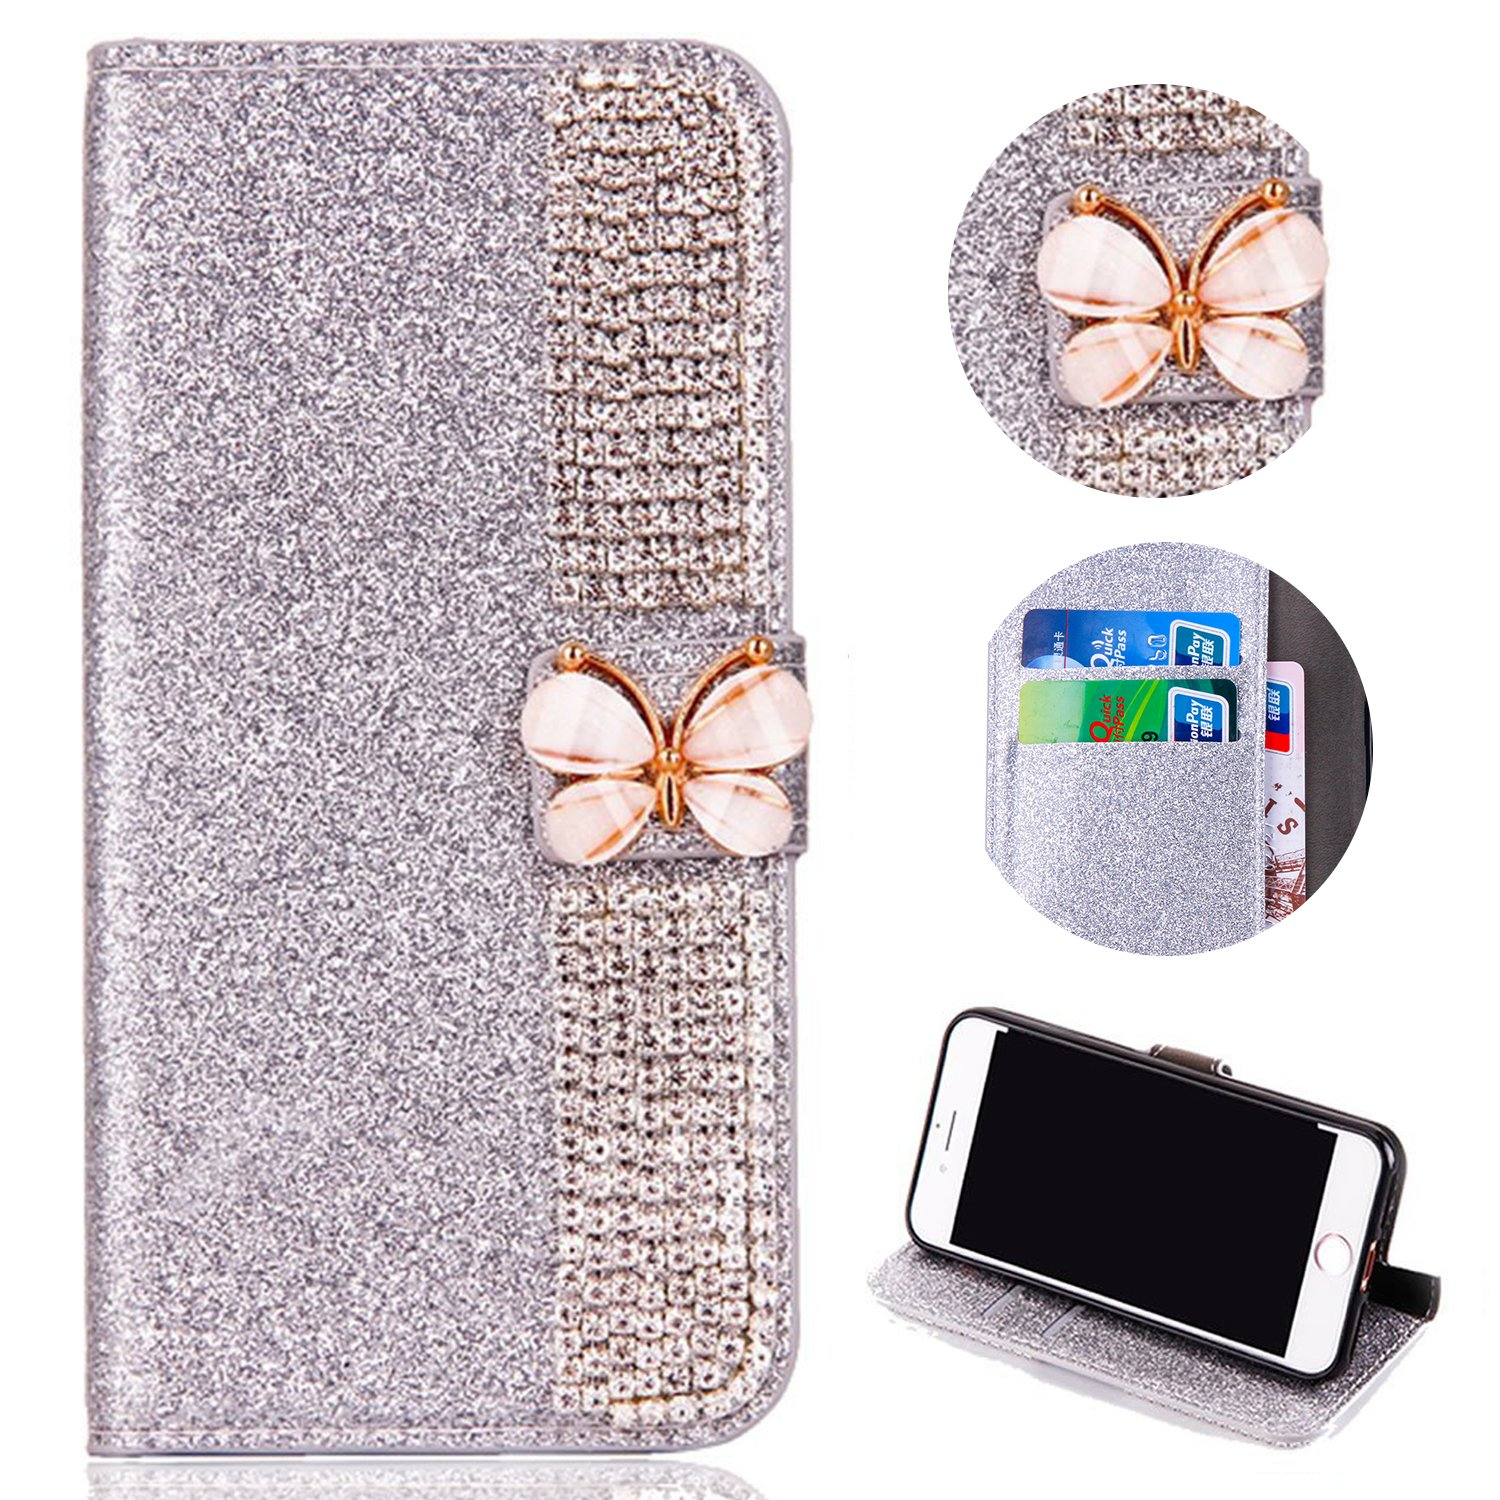 Bling Glitter Case for iPhone XR 6.1 inch,Shinyzone Luxury Diamond [3D Butterfly Magnetic Buckle] [Stand Feature] PU Leather Wallet Protective Cover for iPhone XR 6.1 inch,Silver